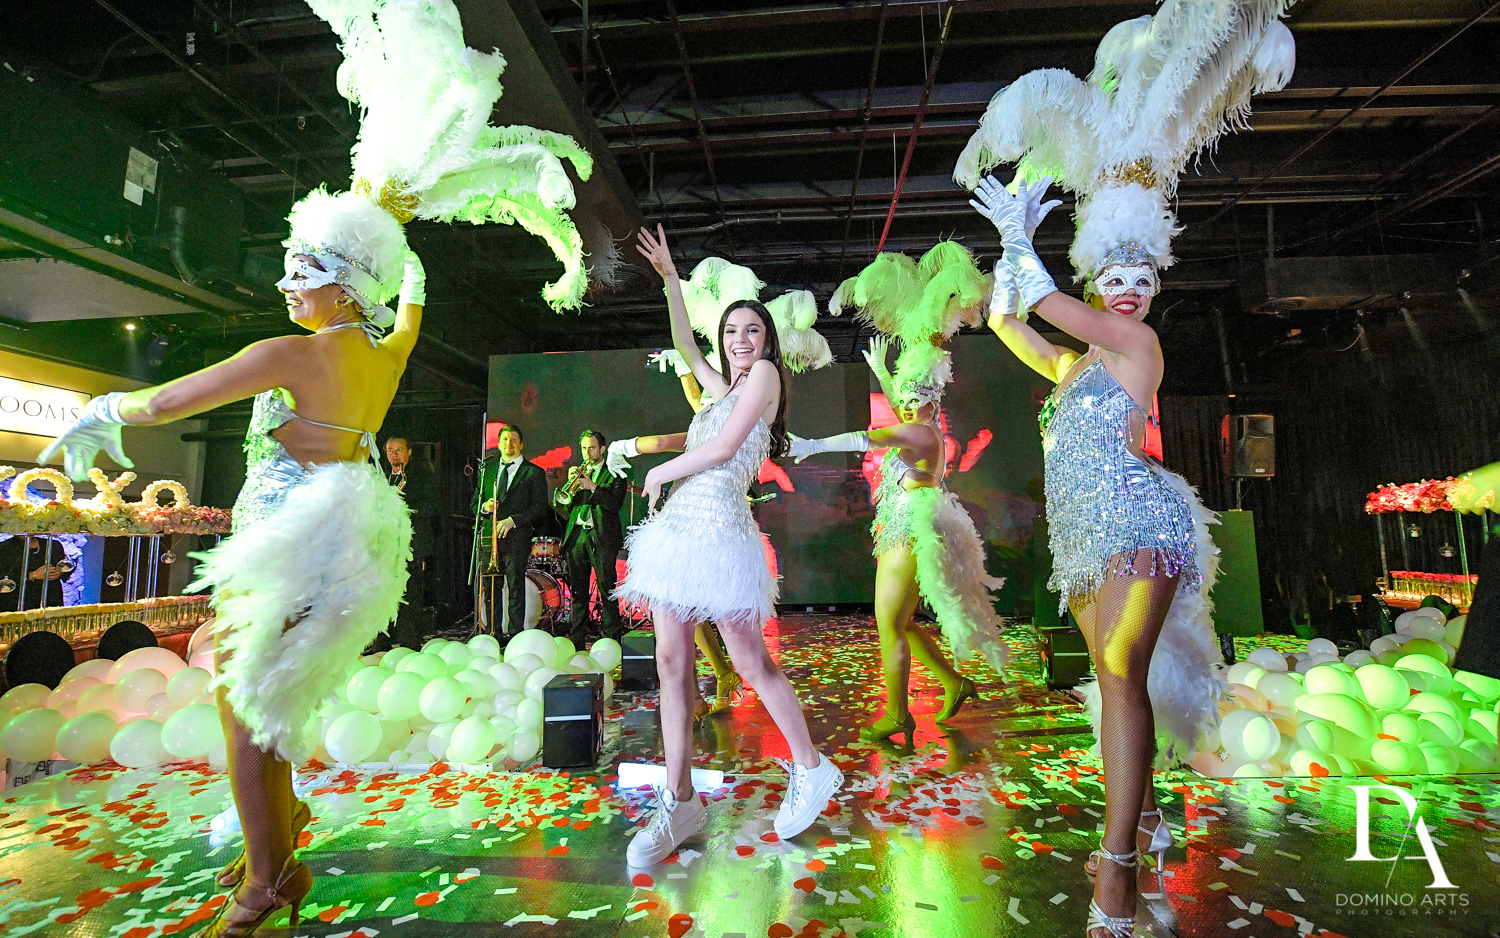 performace at Fashion Theme Bat Mitzvah at Gallery of Amazing Things by Domino Arts Photography